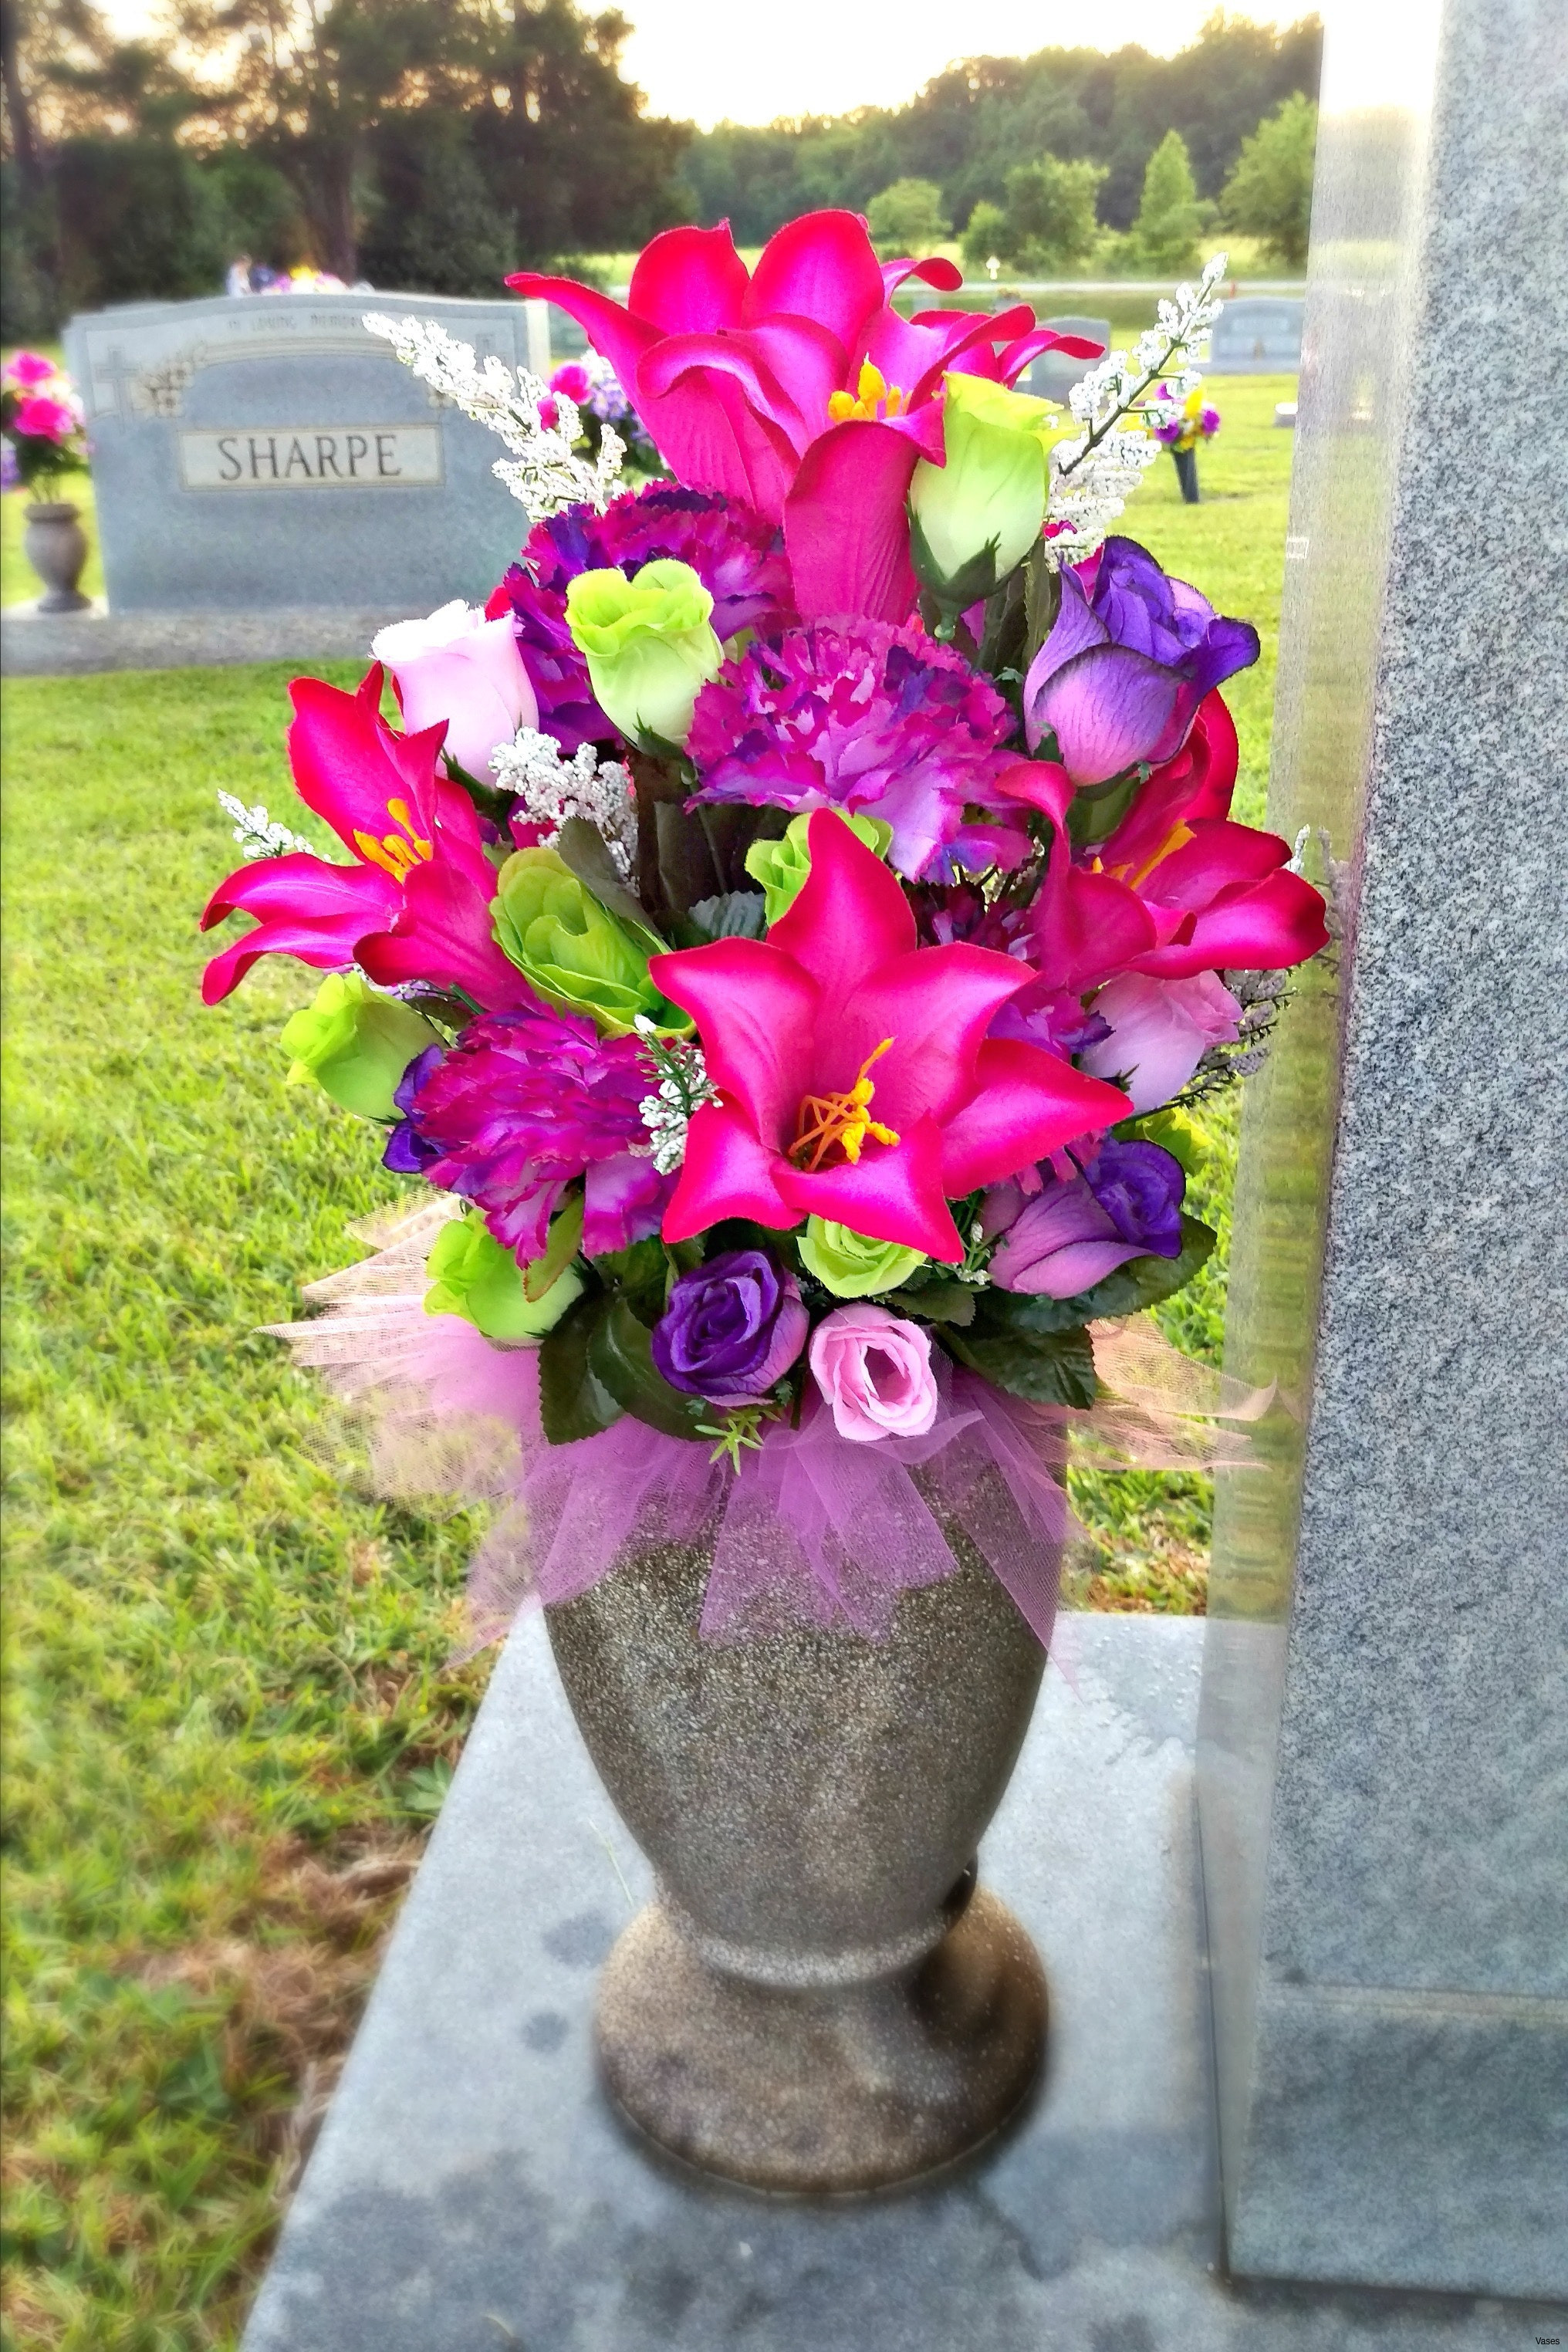 metal flower vases for graves of in ground cemetery vases images vases grave flower vase cemetery within in ground cemetery vases images vases grave flower vase cemetery informationi 0d in ground holders of